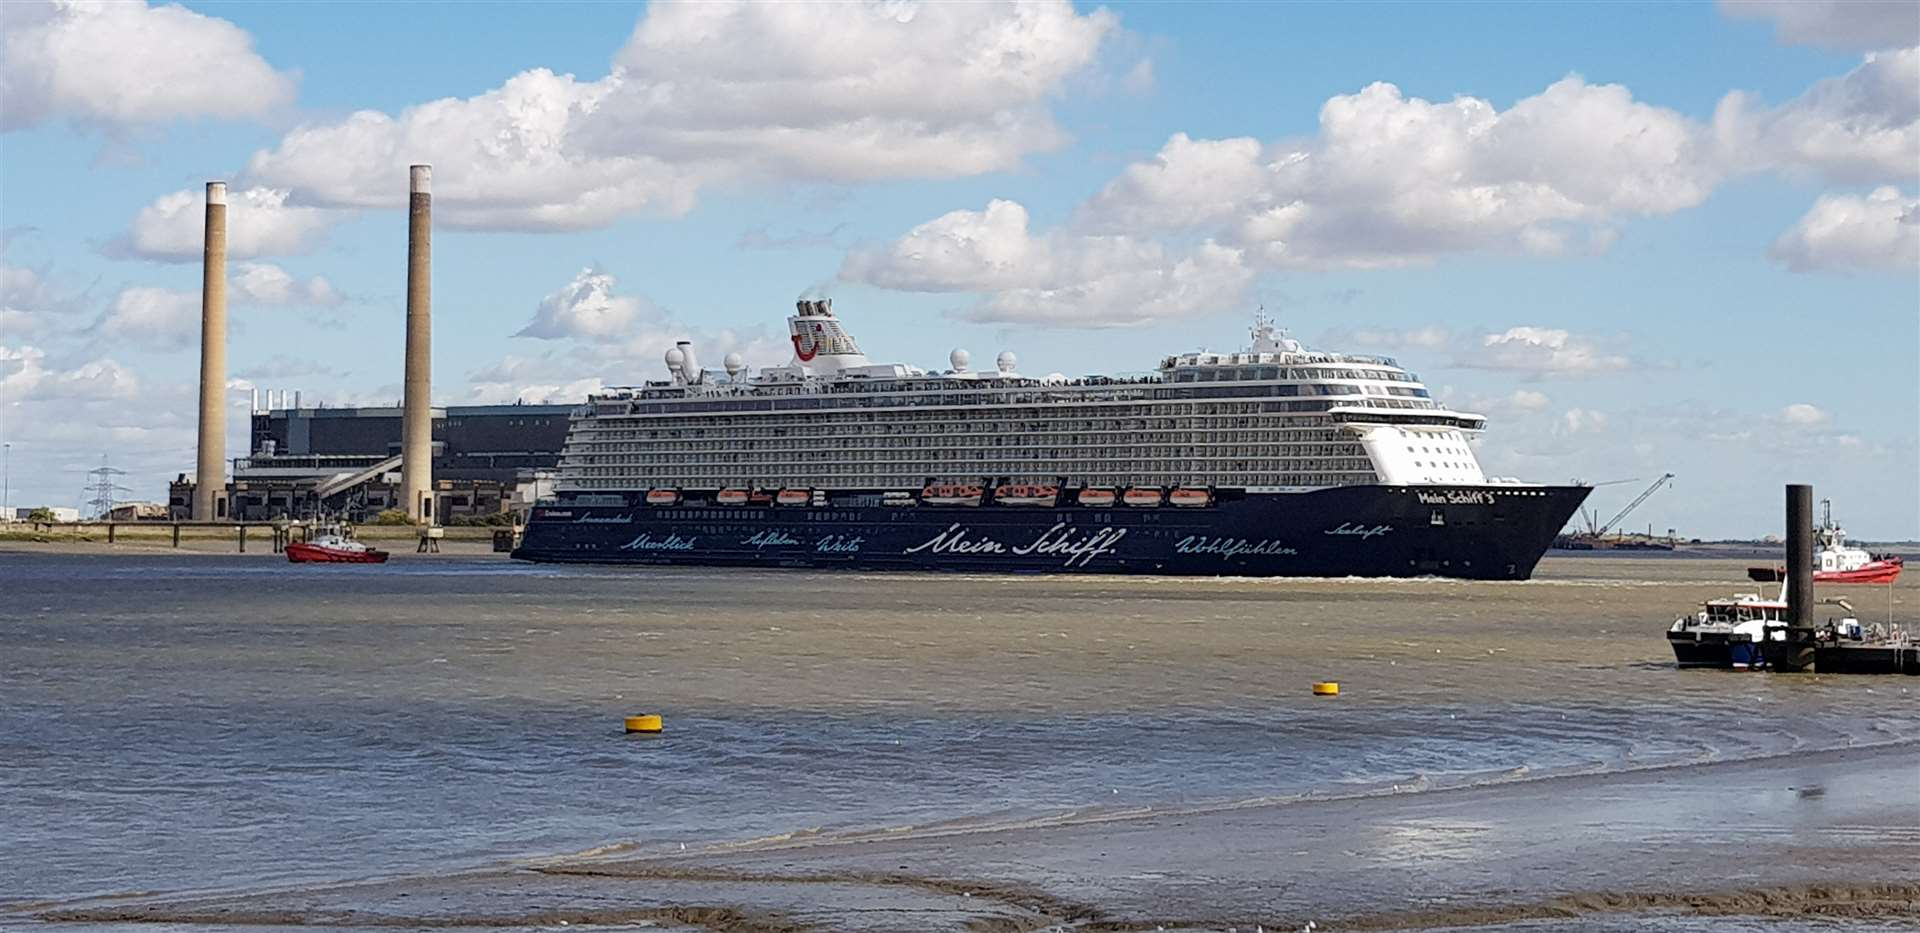 Cruise ship TUI Mein Schiff 3 prepares to head out to sea after being delayed by high winds.